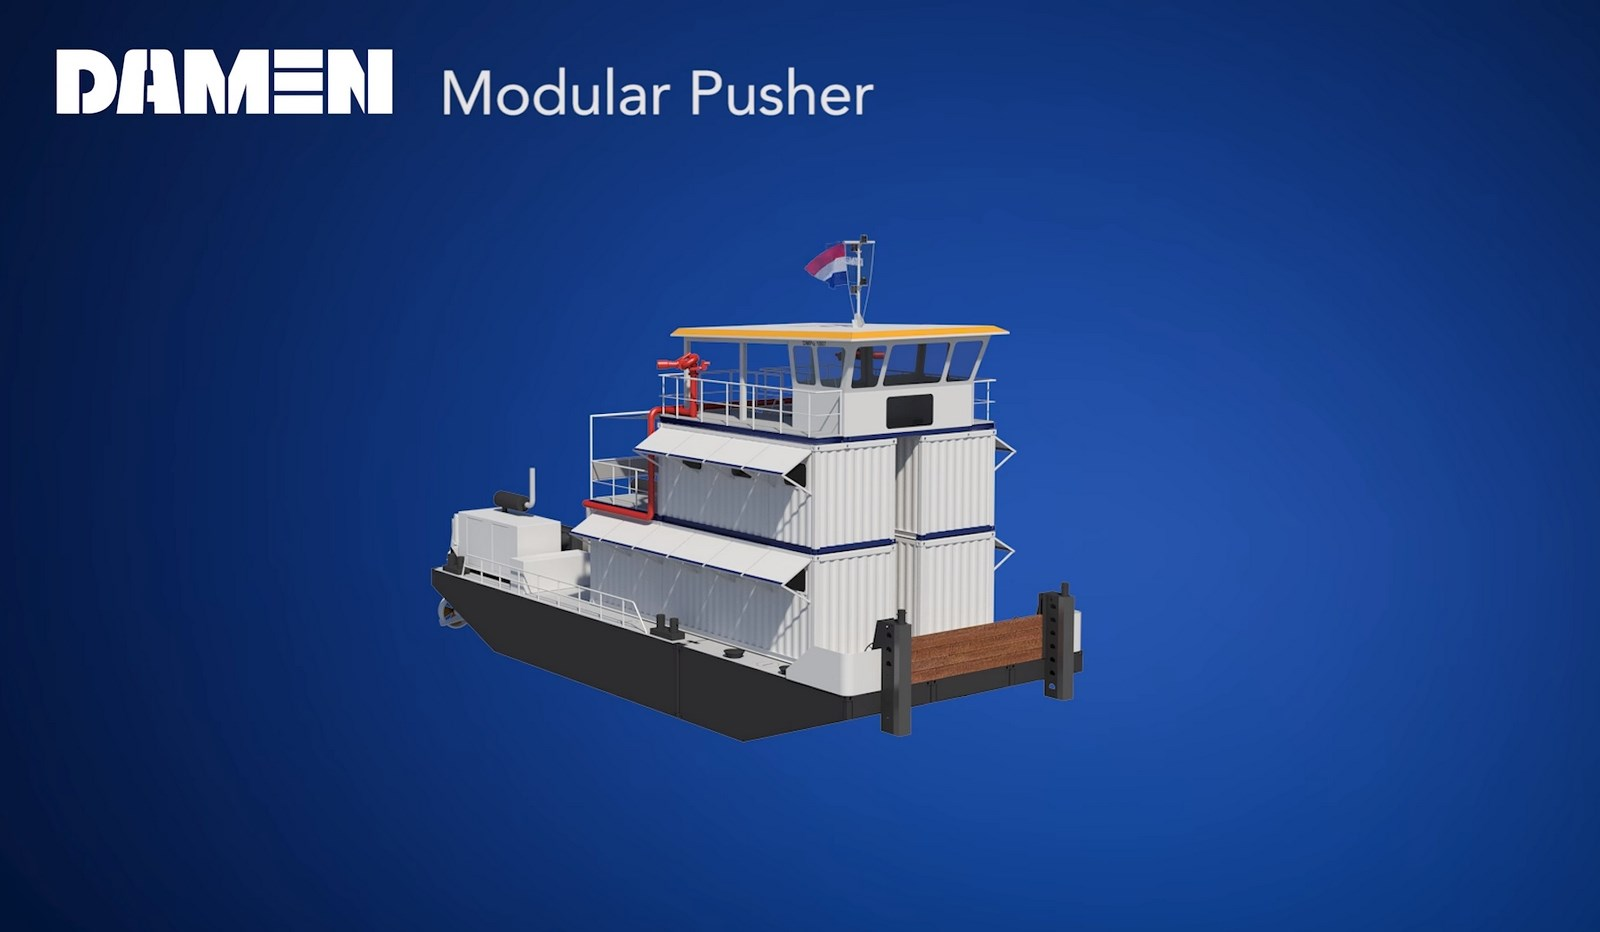 modular push barge 1807 for sale 07425 (61)